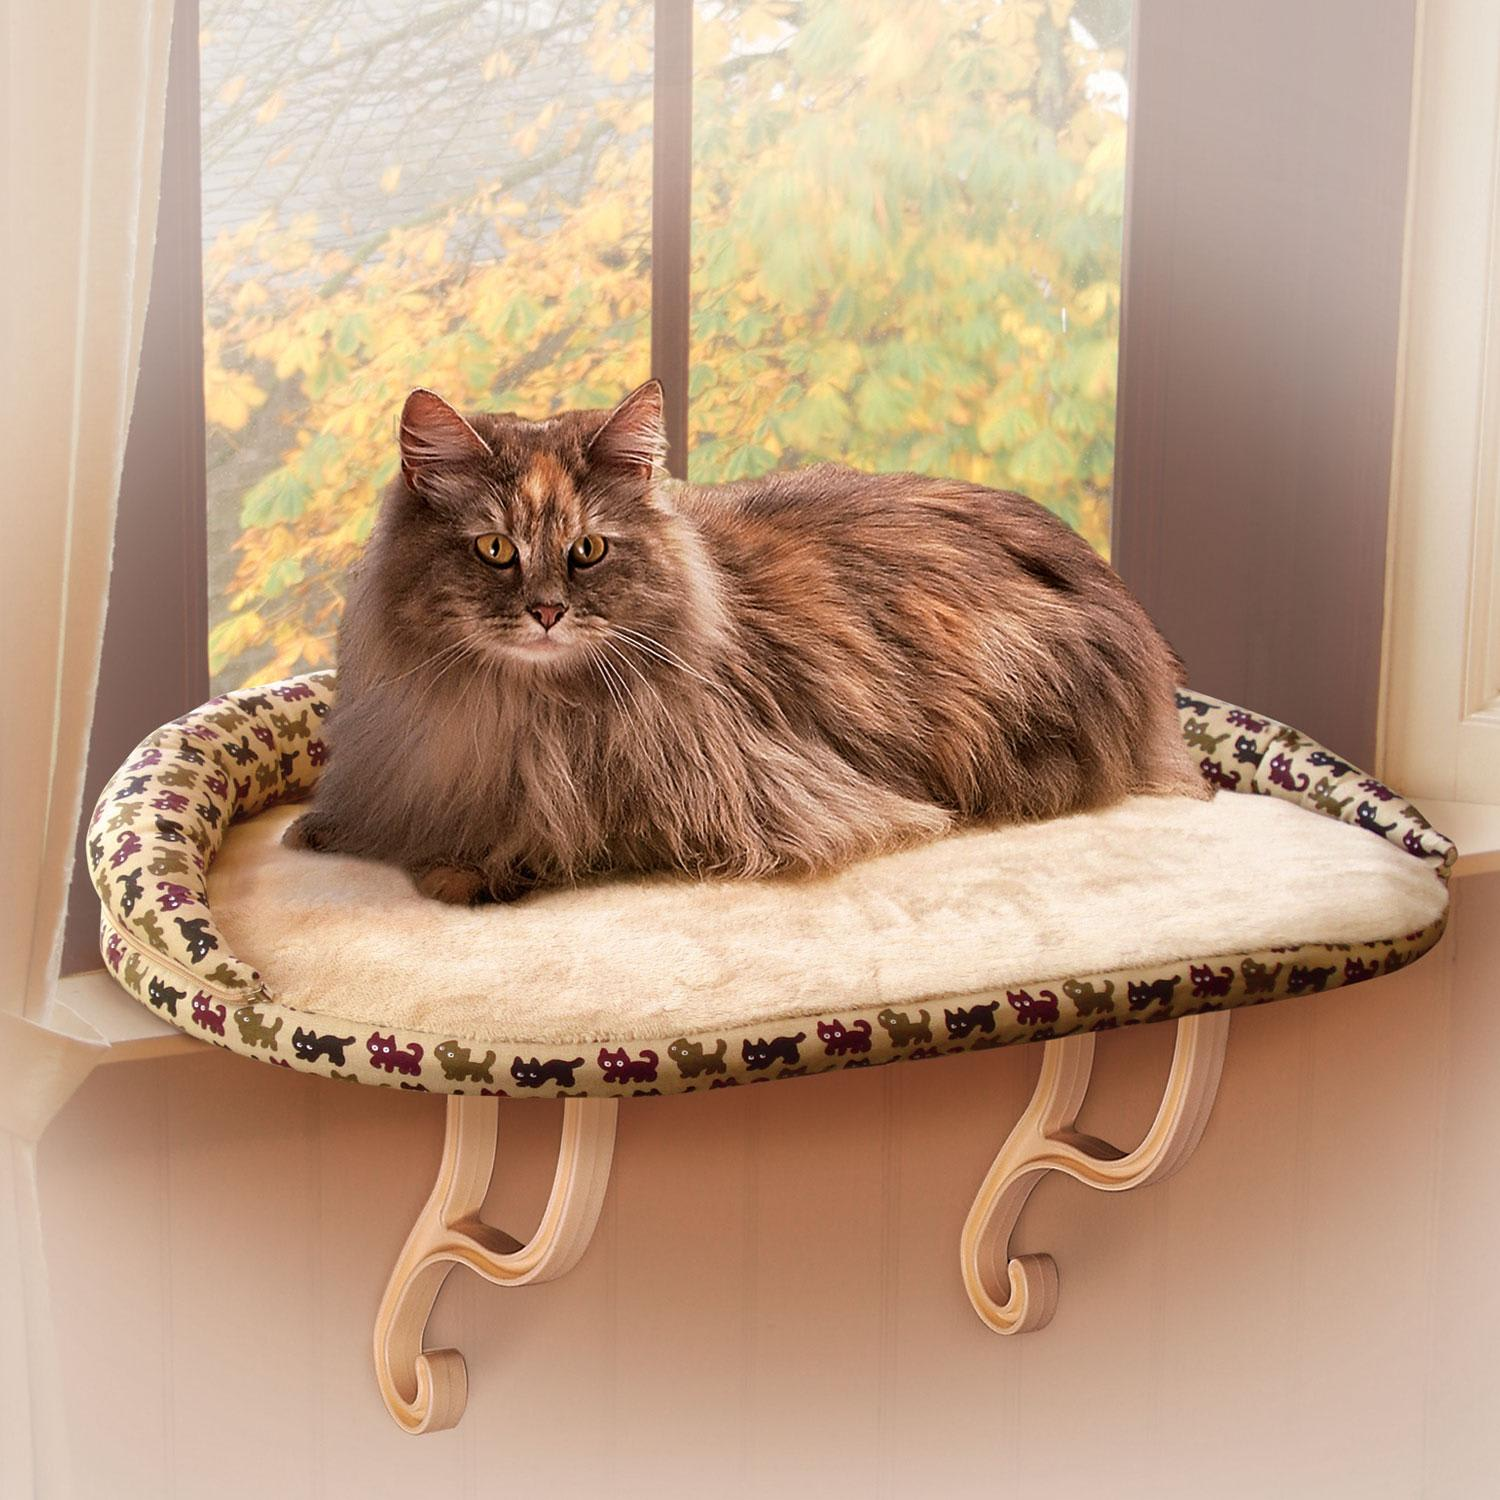 Deluxe Kitty Sill with Bolster Tan